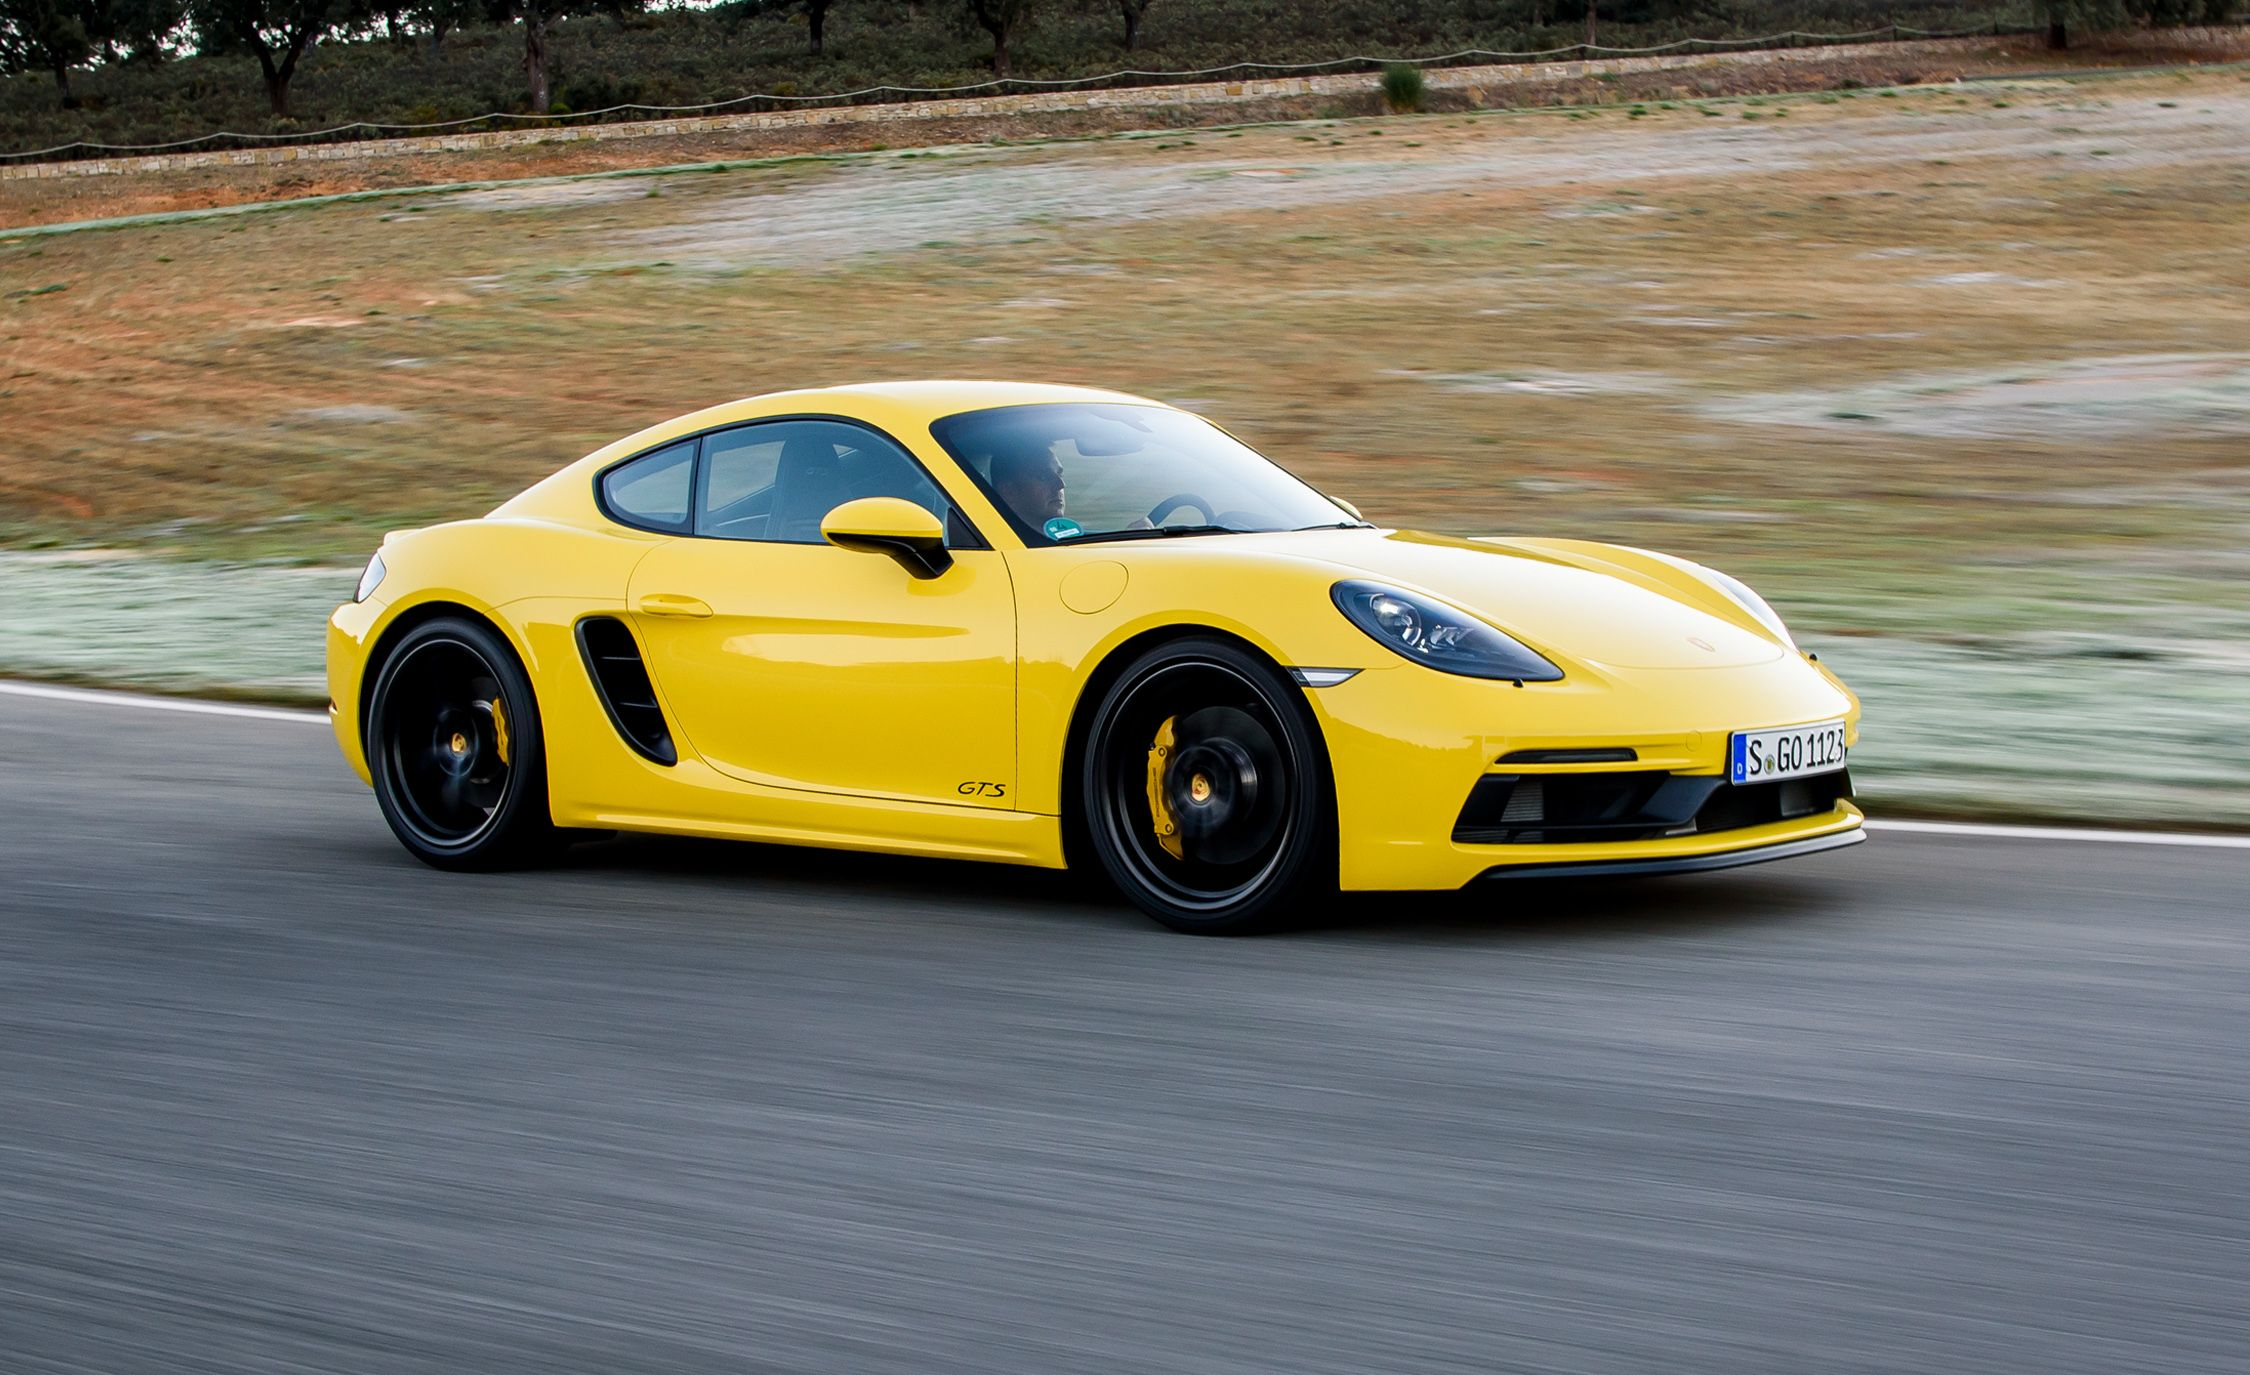 2018 Porsche 718 Boxster Cayman Gts First Drive Review Car And Driver